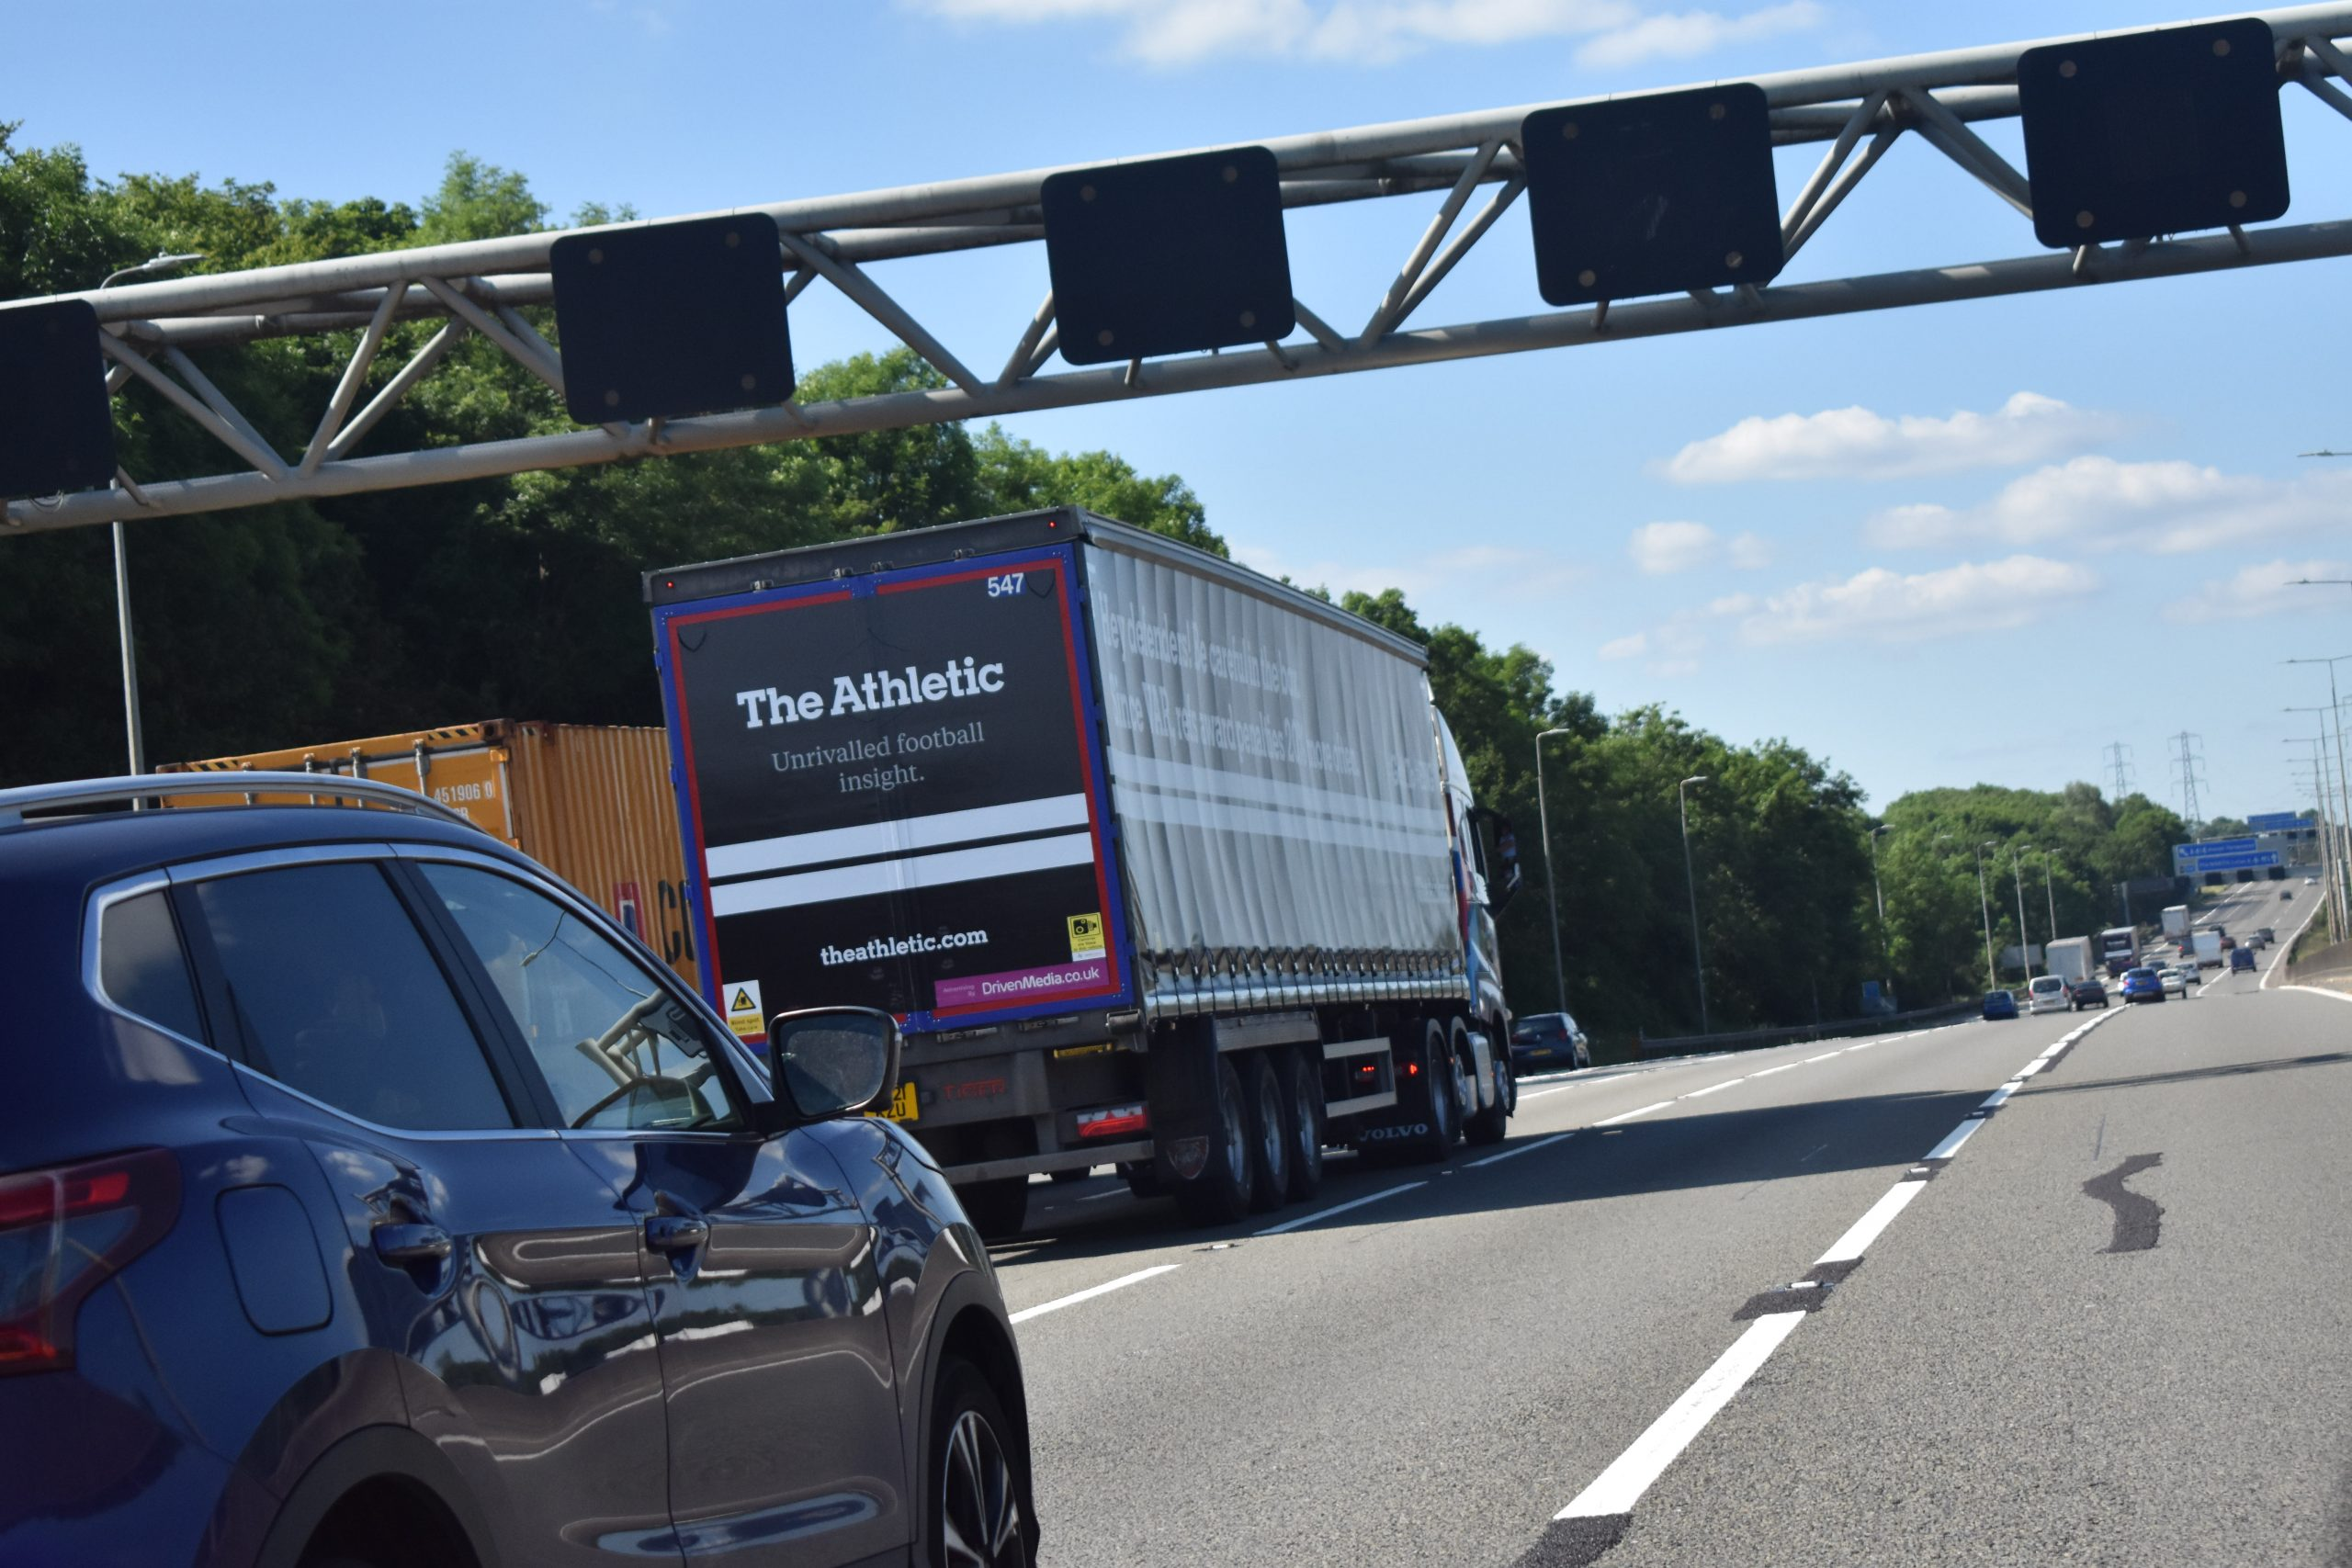 The Athletic On the M1